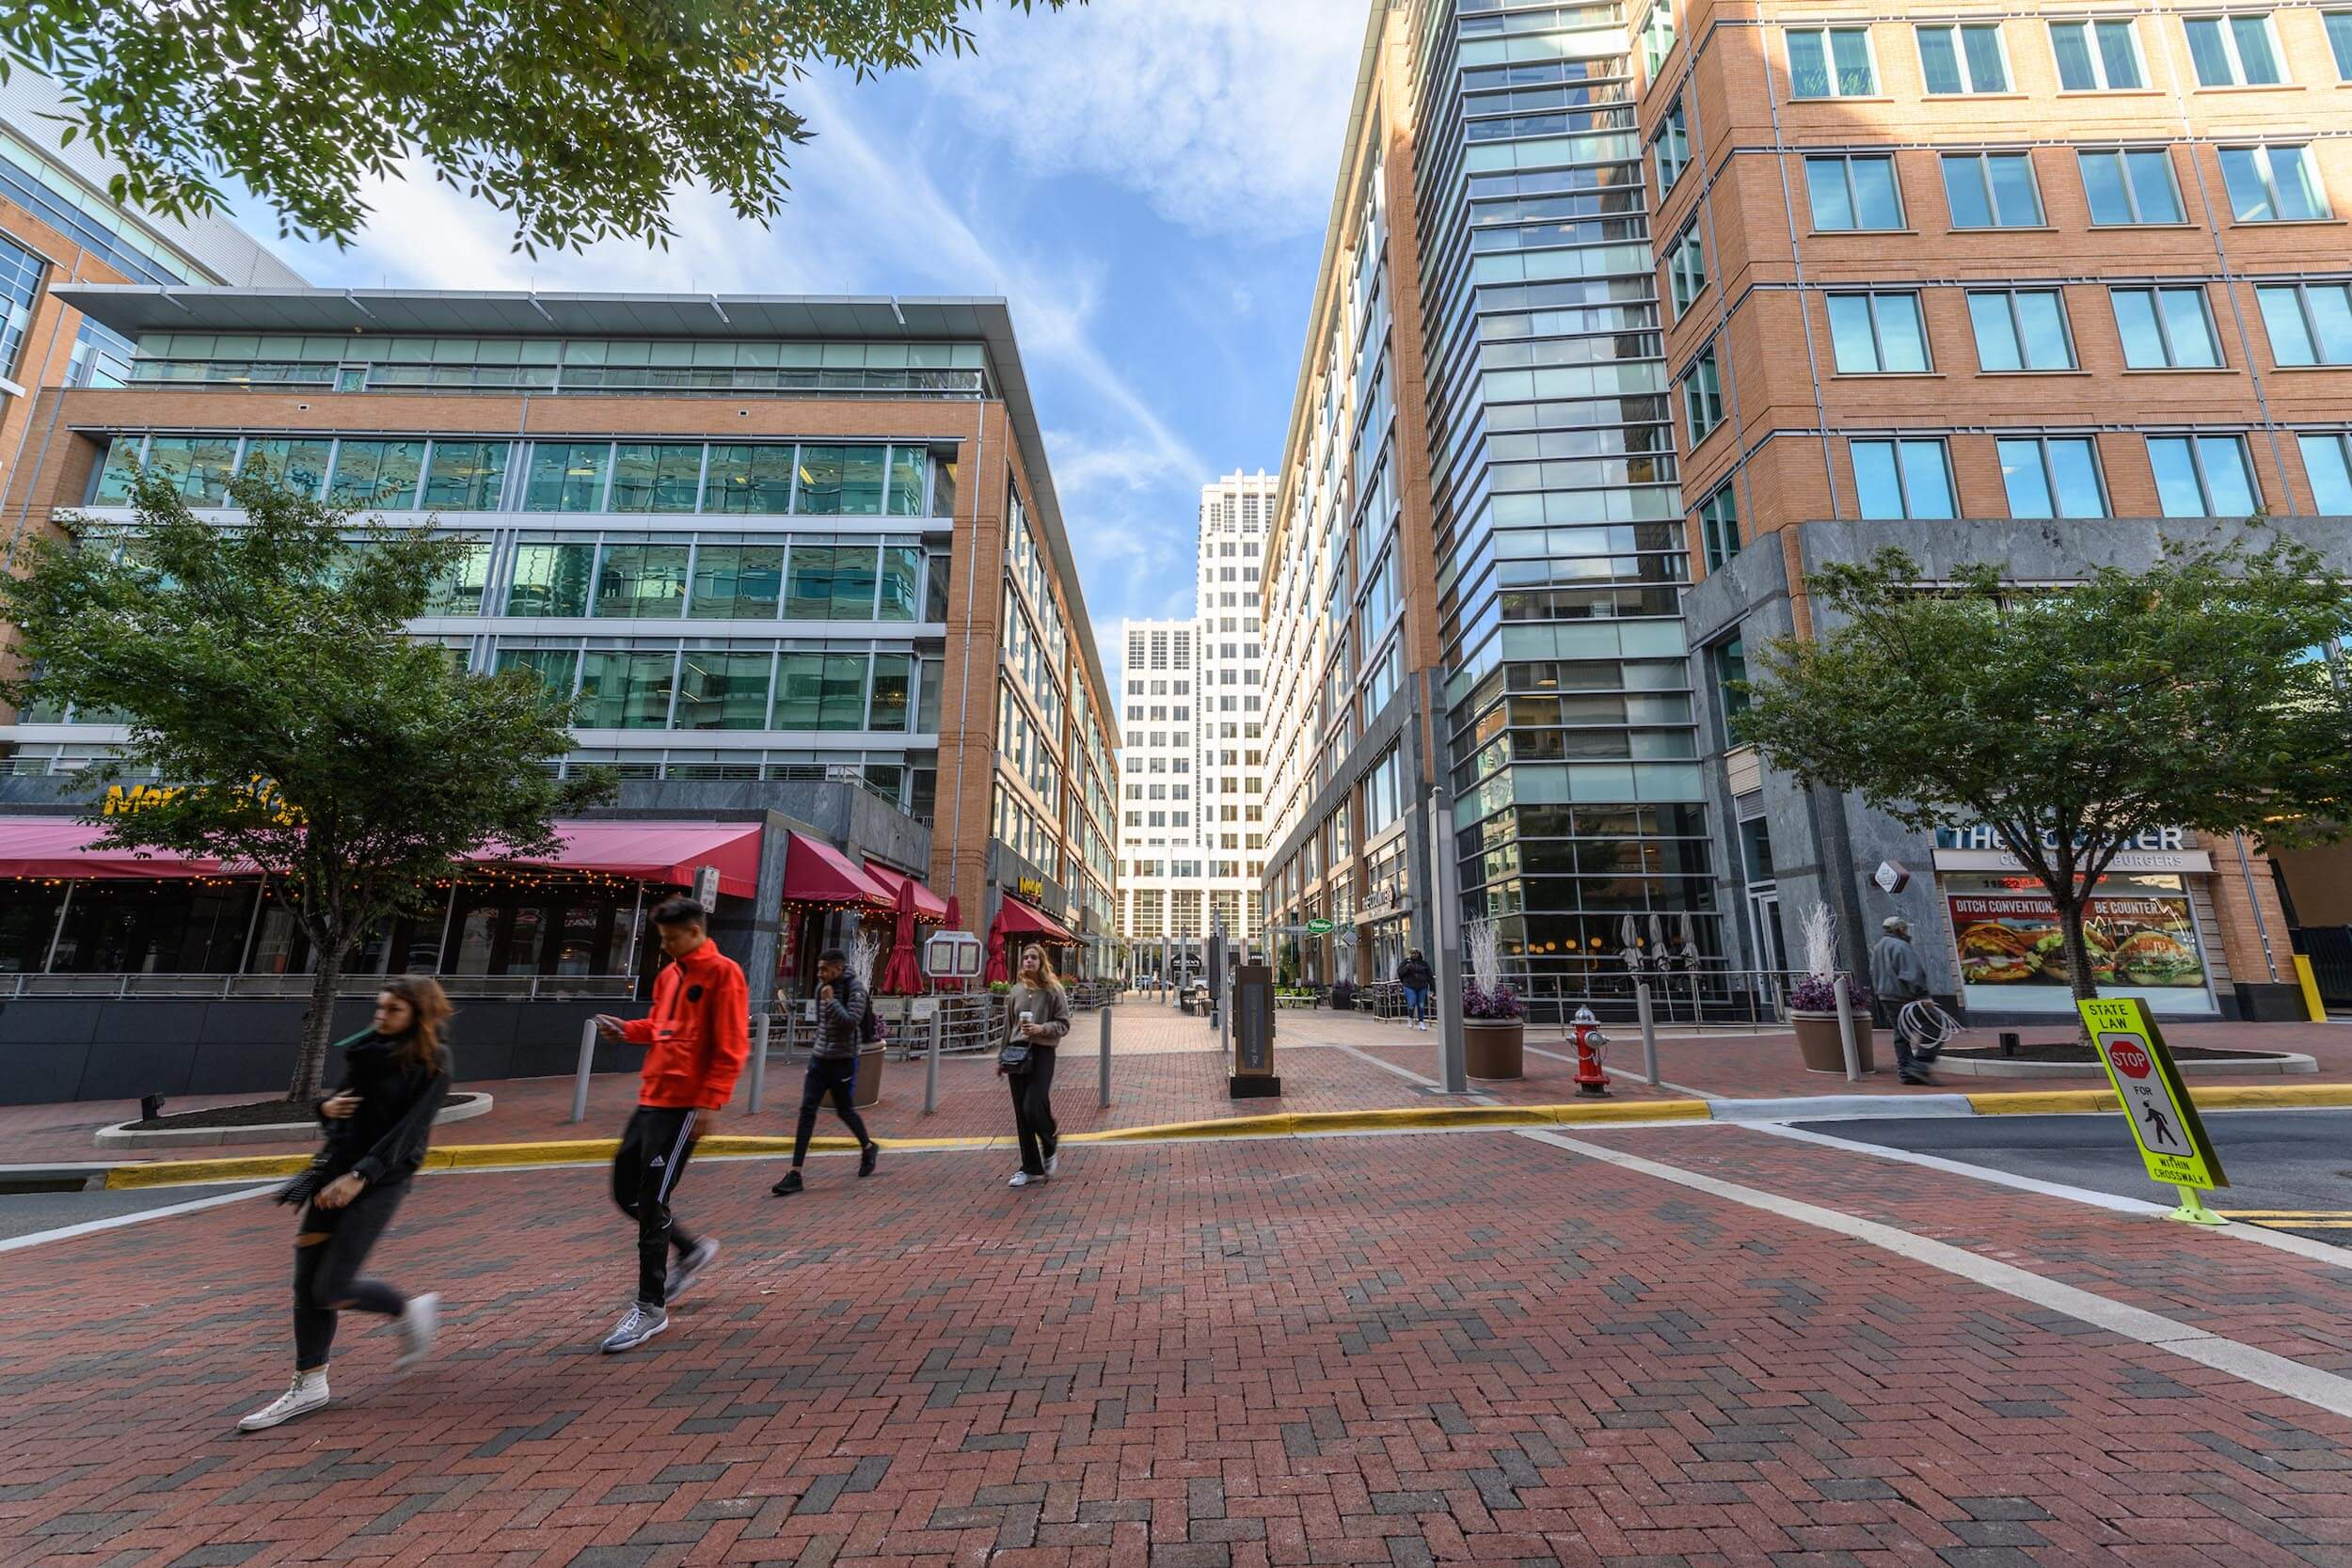 Commercial buildings at Reston Town Center in Reston, Virginia